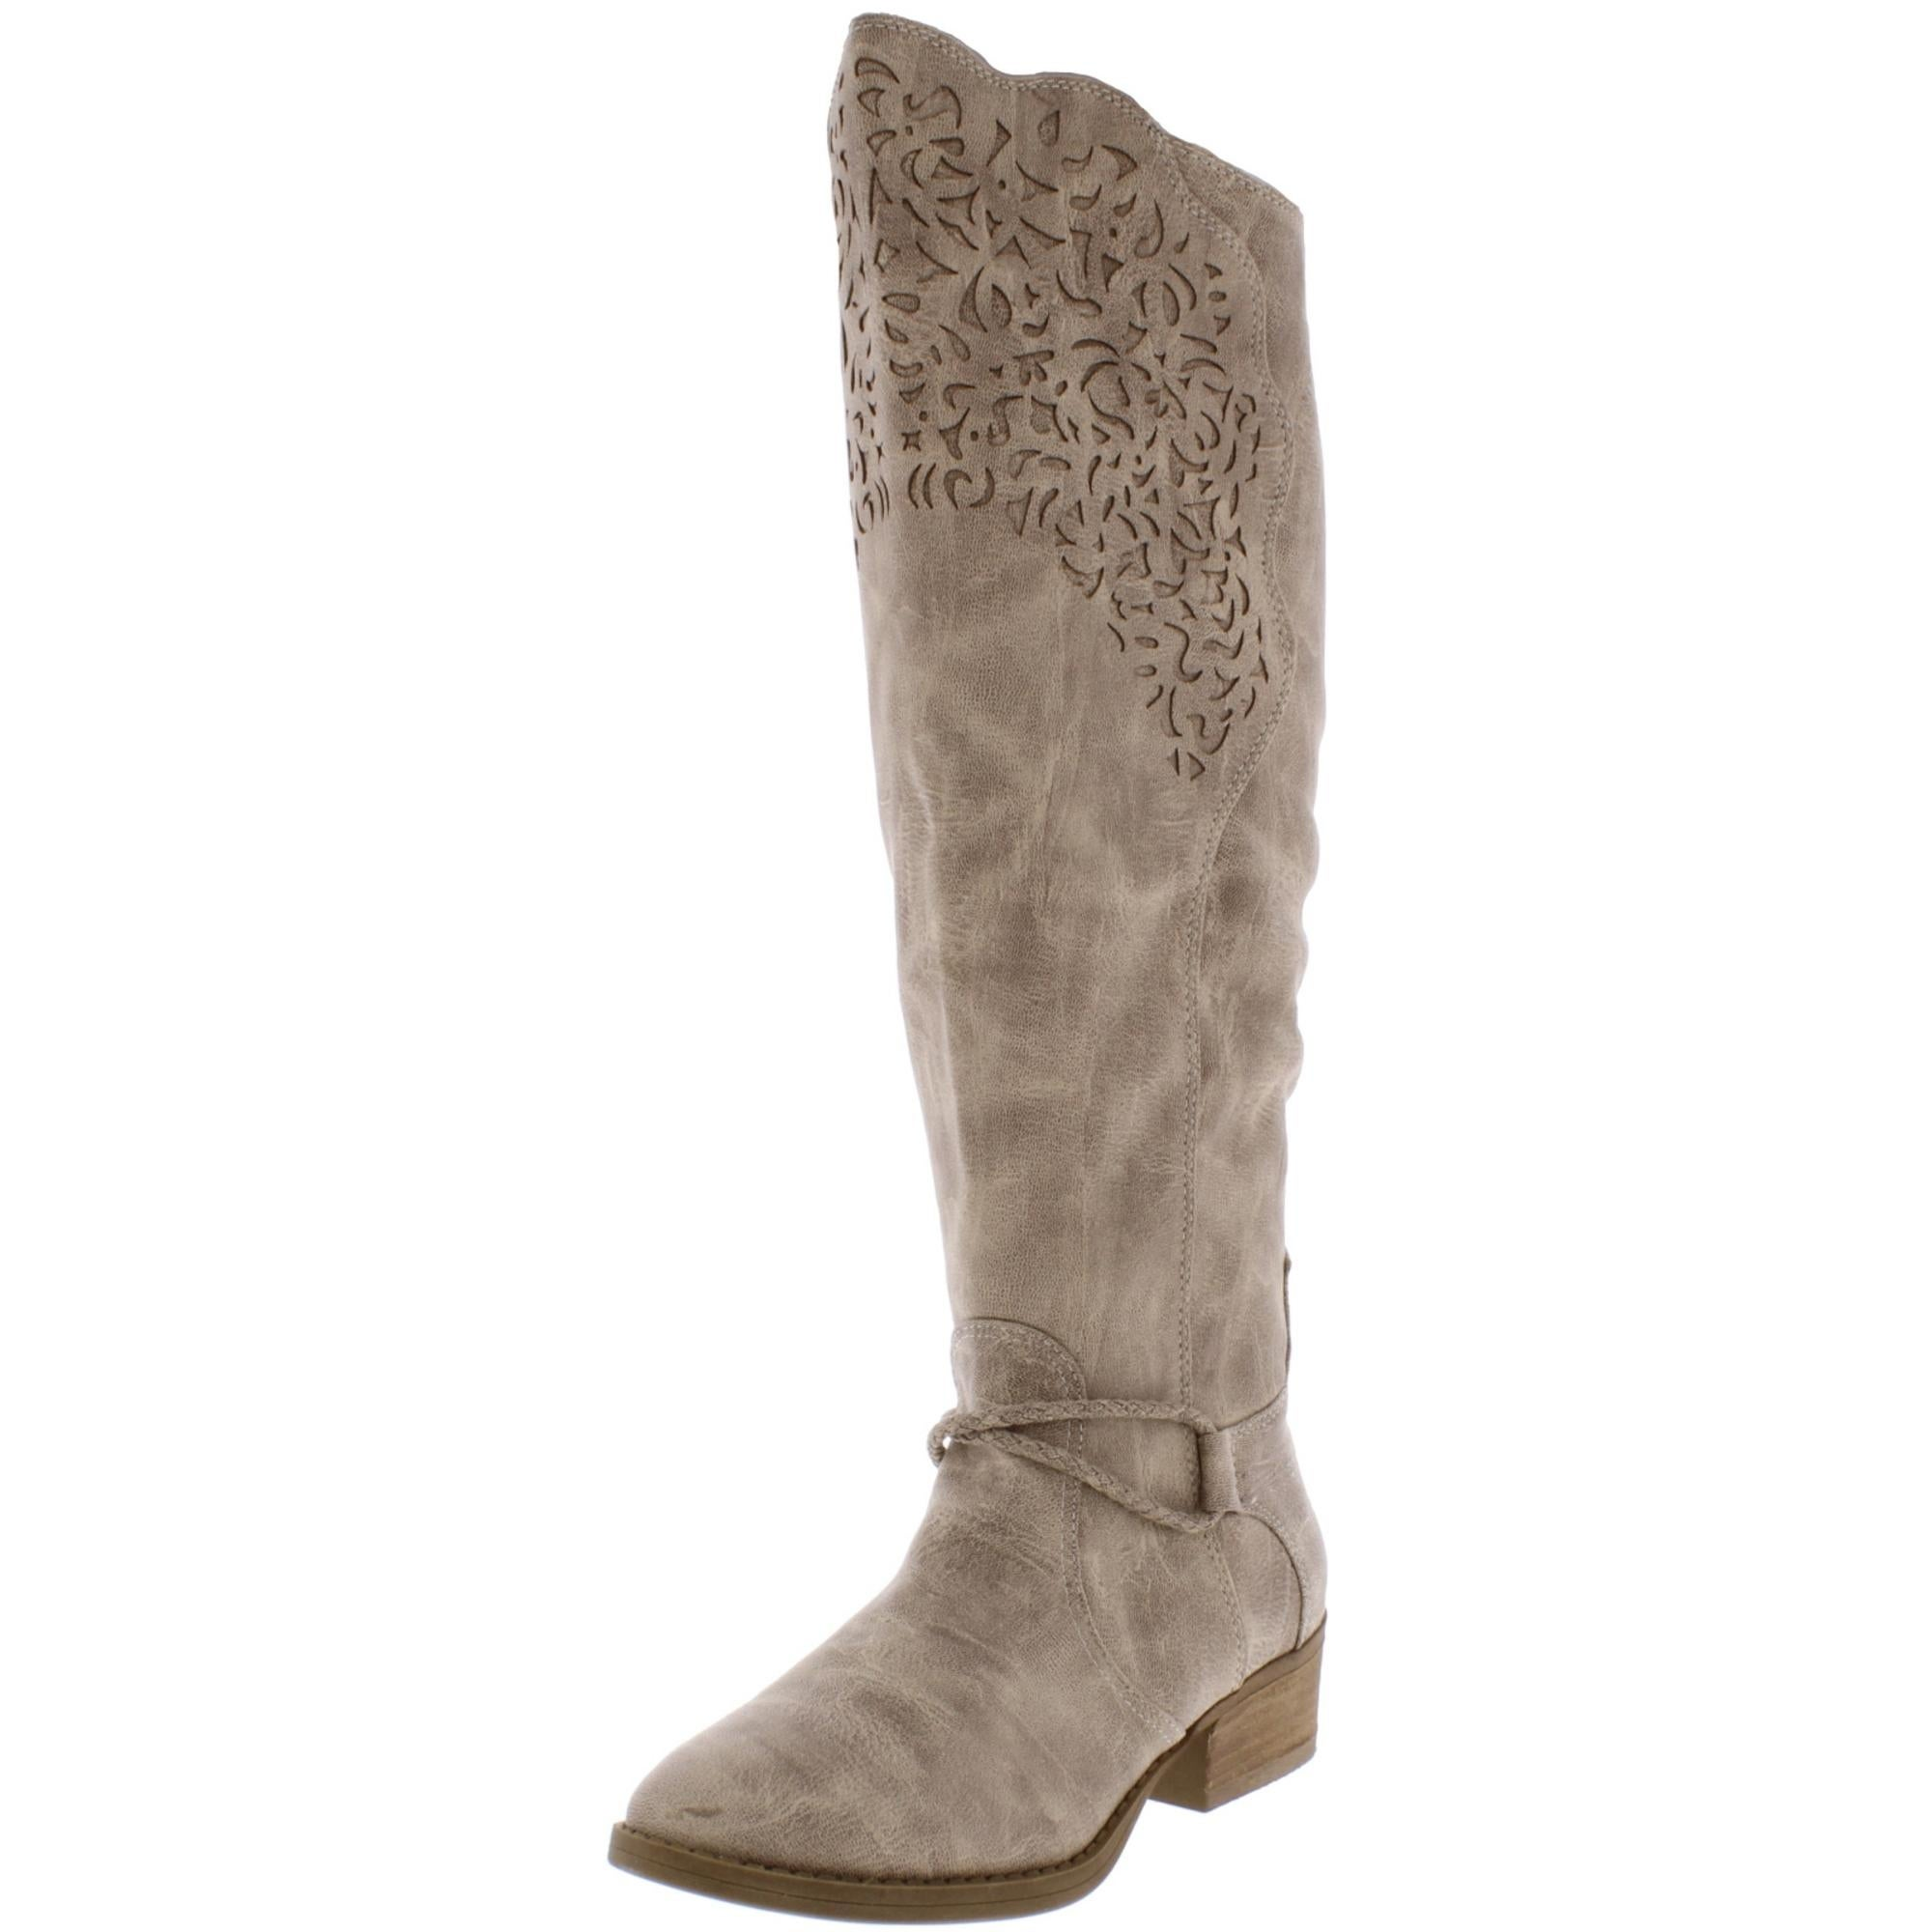 Shop Very G Women's Twisted Faux Suede